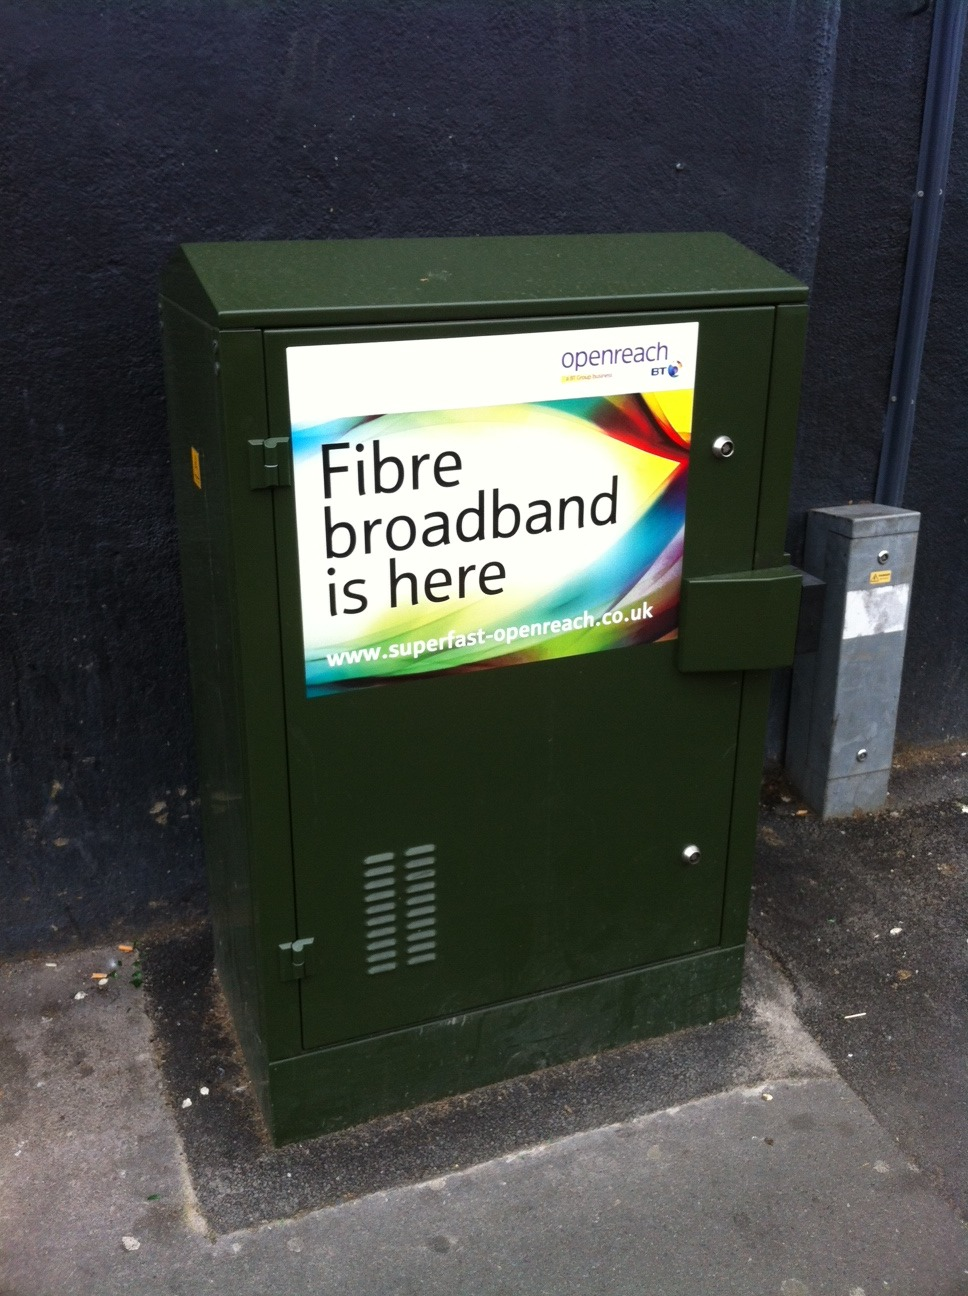 BT is using street-corner cabinets to promote its new FTTC product. This one is in Chiswick, west London.  This is a clever approach to local advertising - only people who can get the service will see the posters. Not sure how effective it is, though.